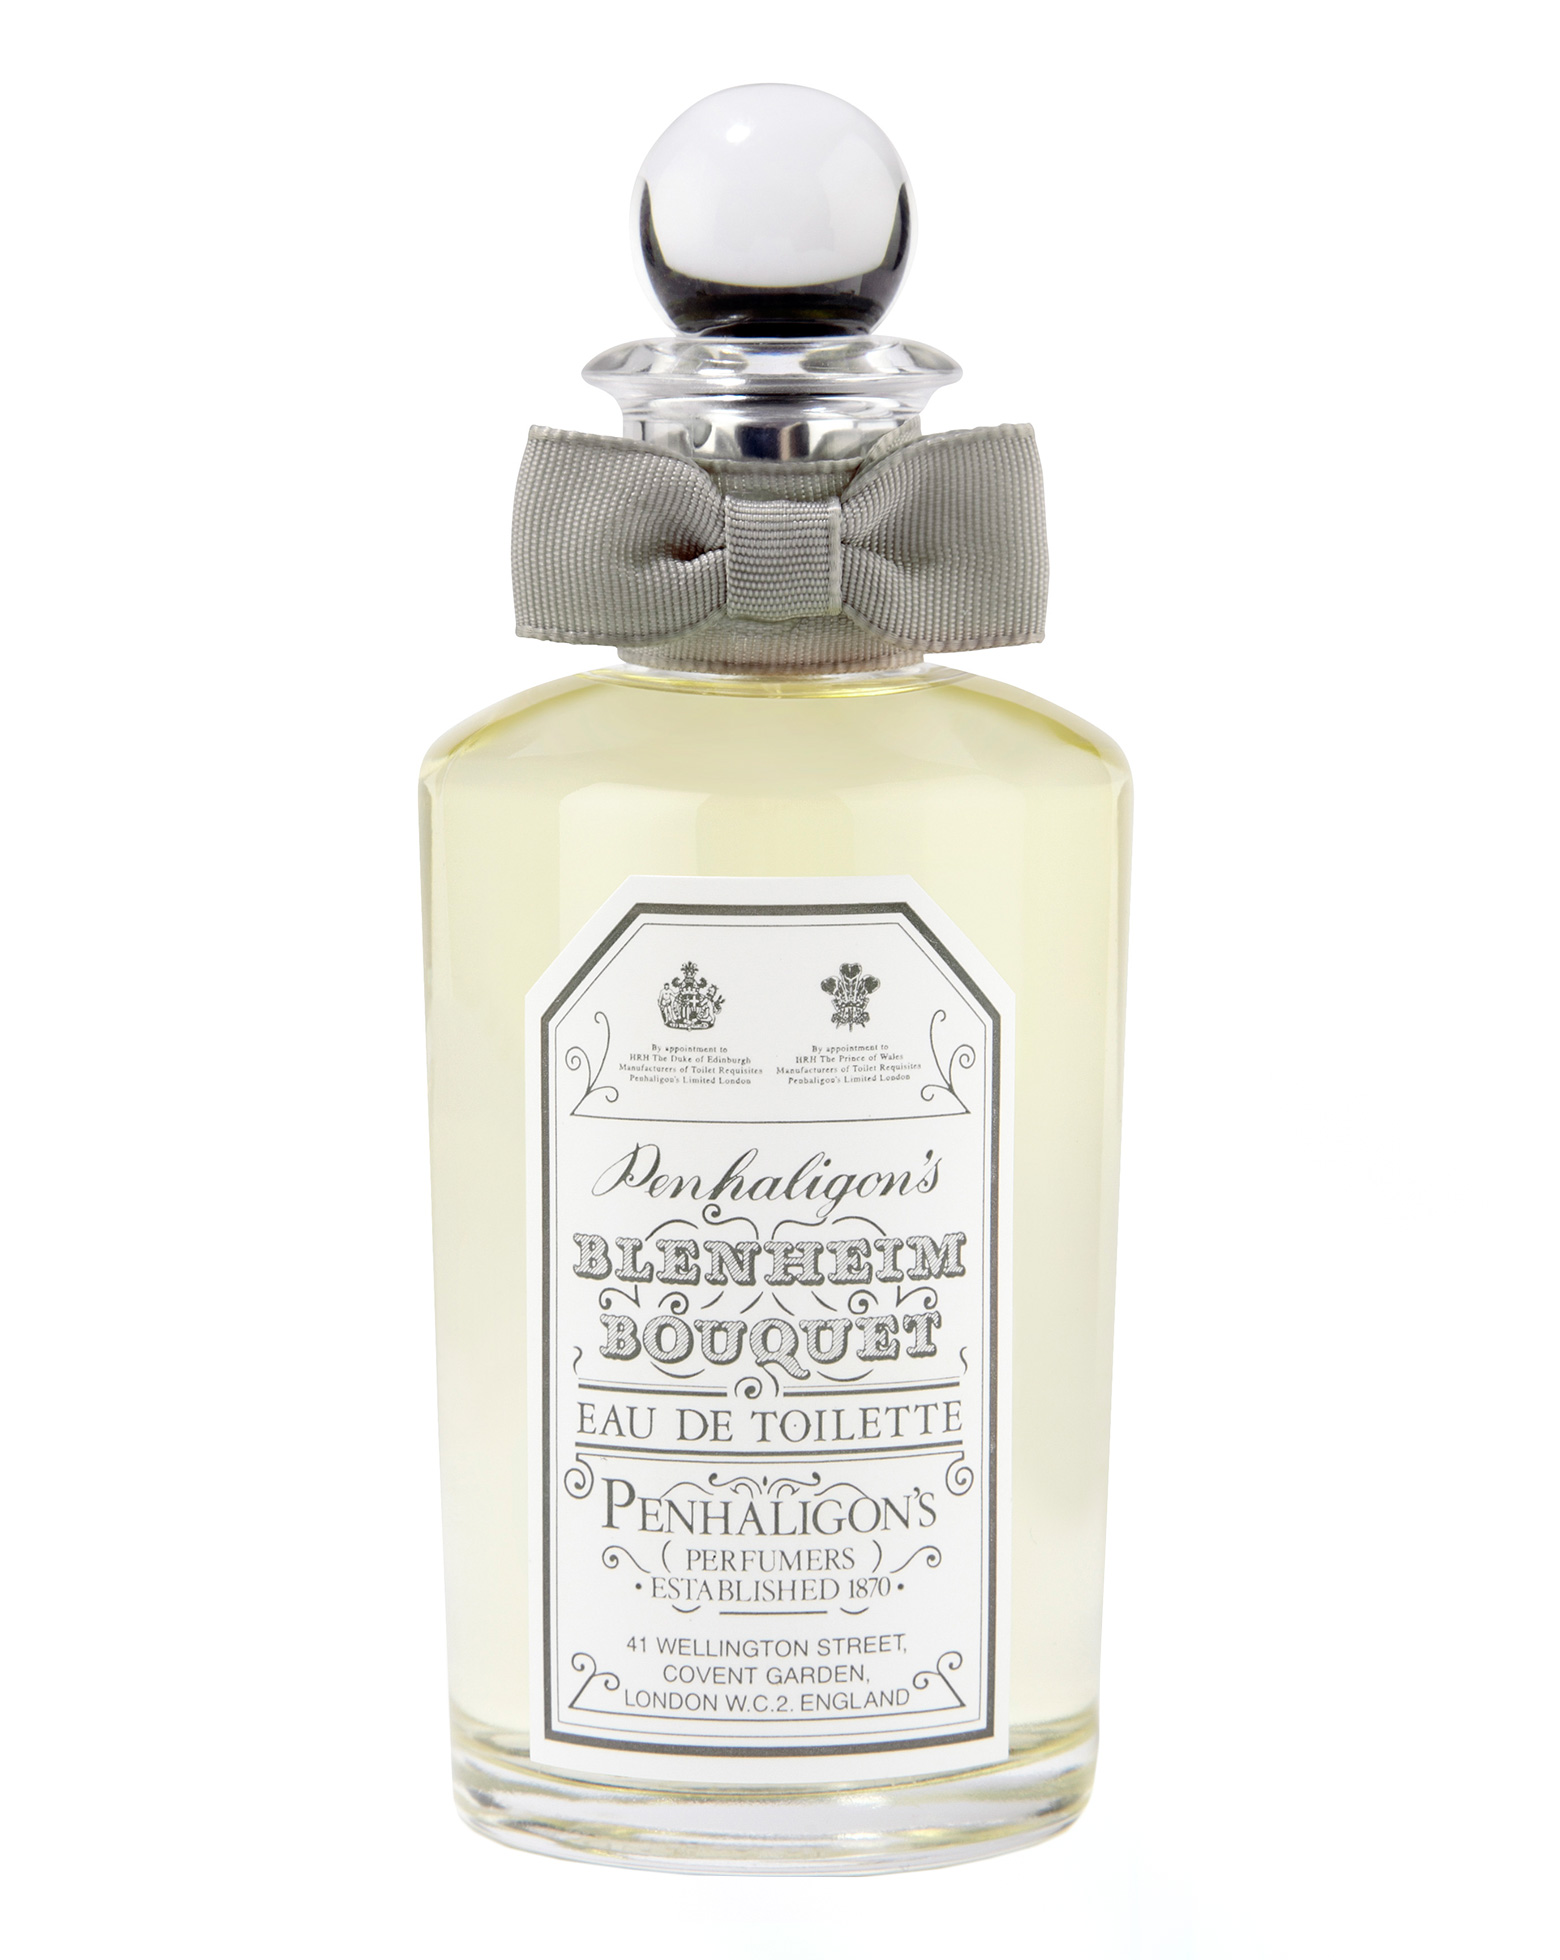 penhaligon 39 s blenheim bouquet eau de toilette cult beauty. Black Bedroom Furniture Sets. Home Design Ideas